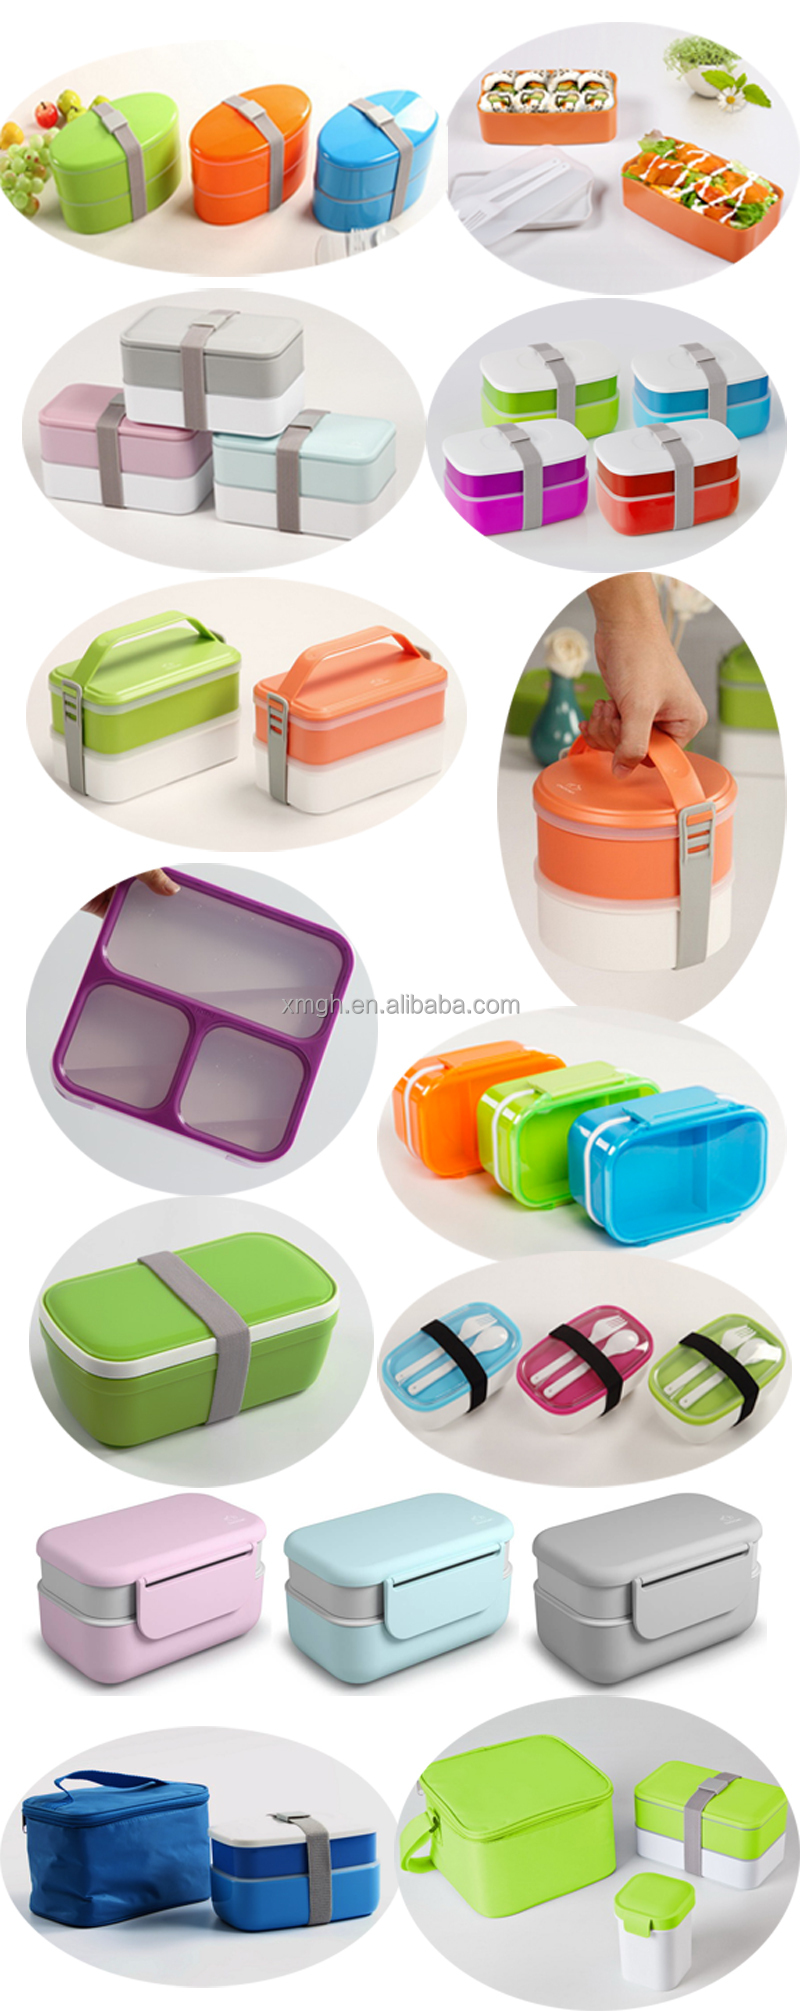 High Quality Pp Food Packaging Grade Plastic Lunch Boxes Container Three Sub Box